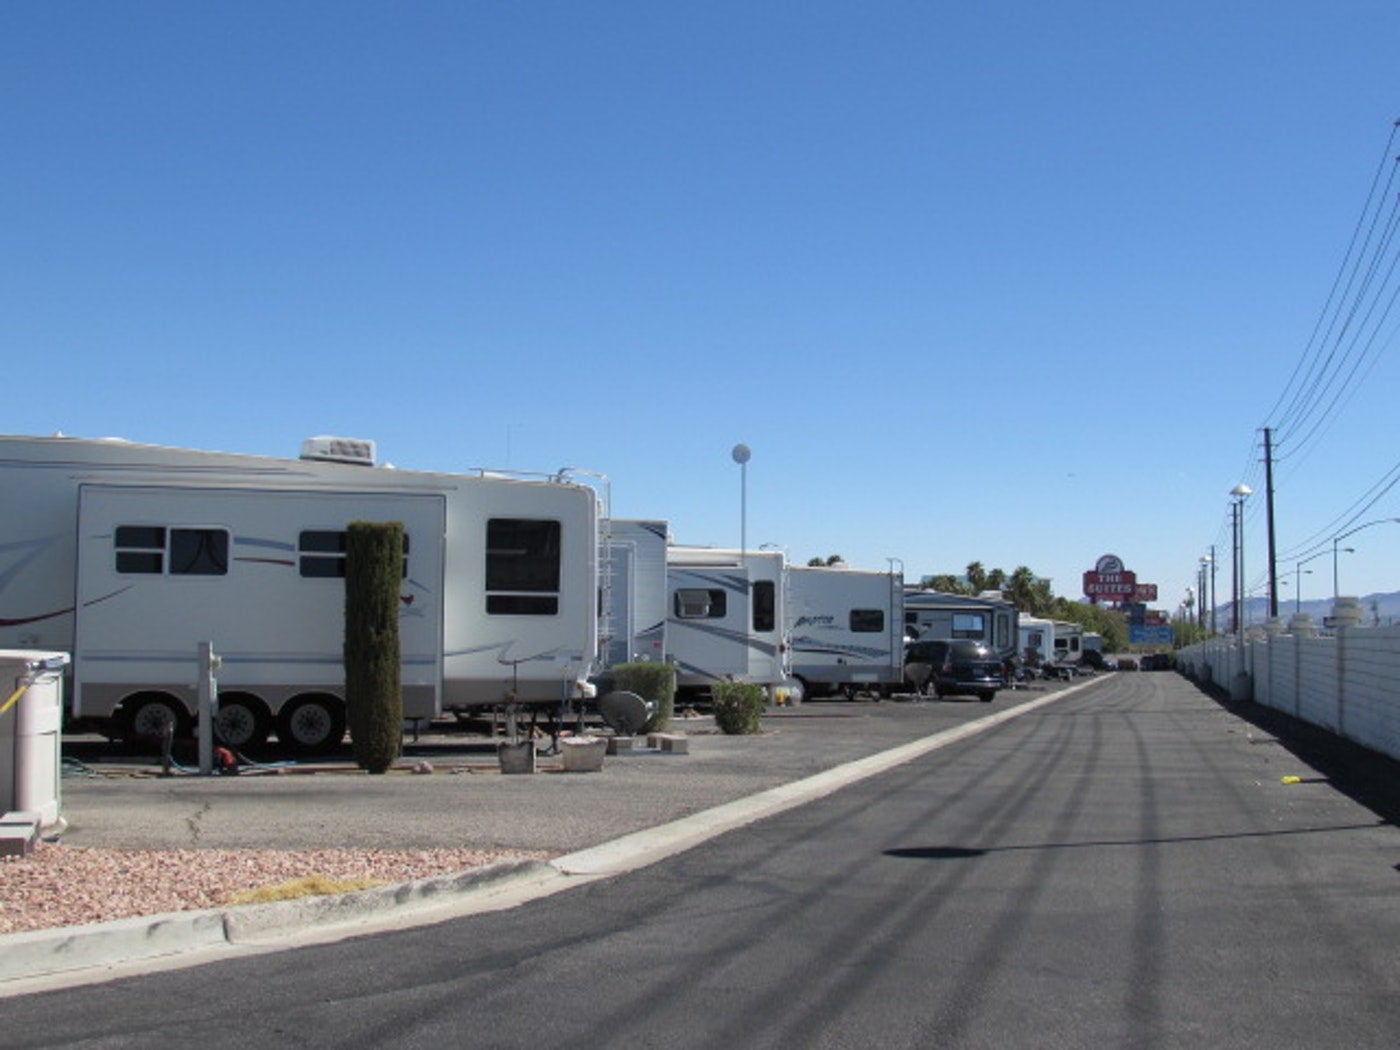 las vegas rv parks, road runner rv park